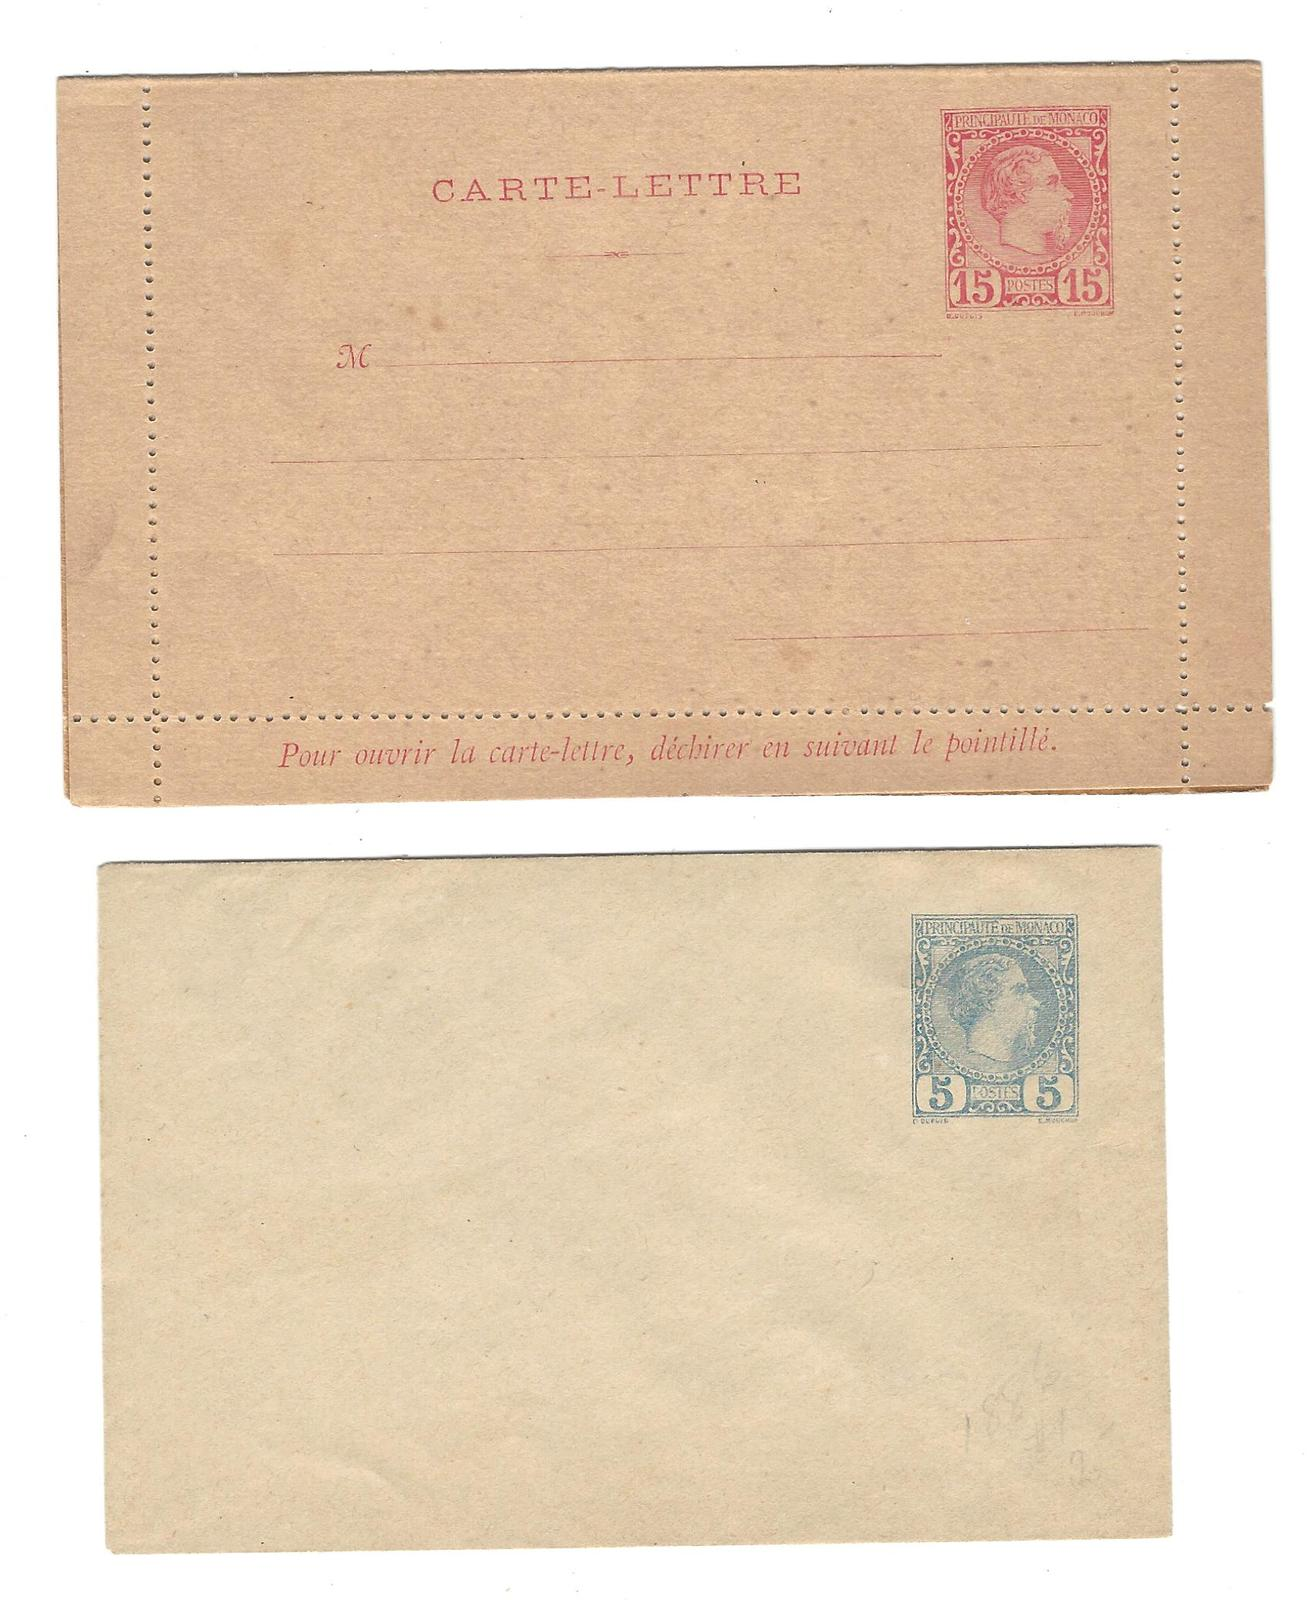 Primary image for Monaco Postal Stationery Unused 5c Envelope 15c Lettercard